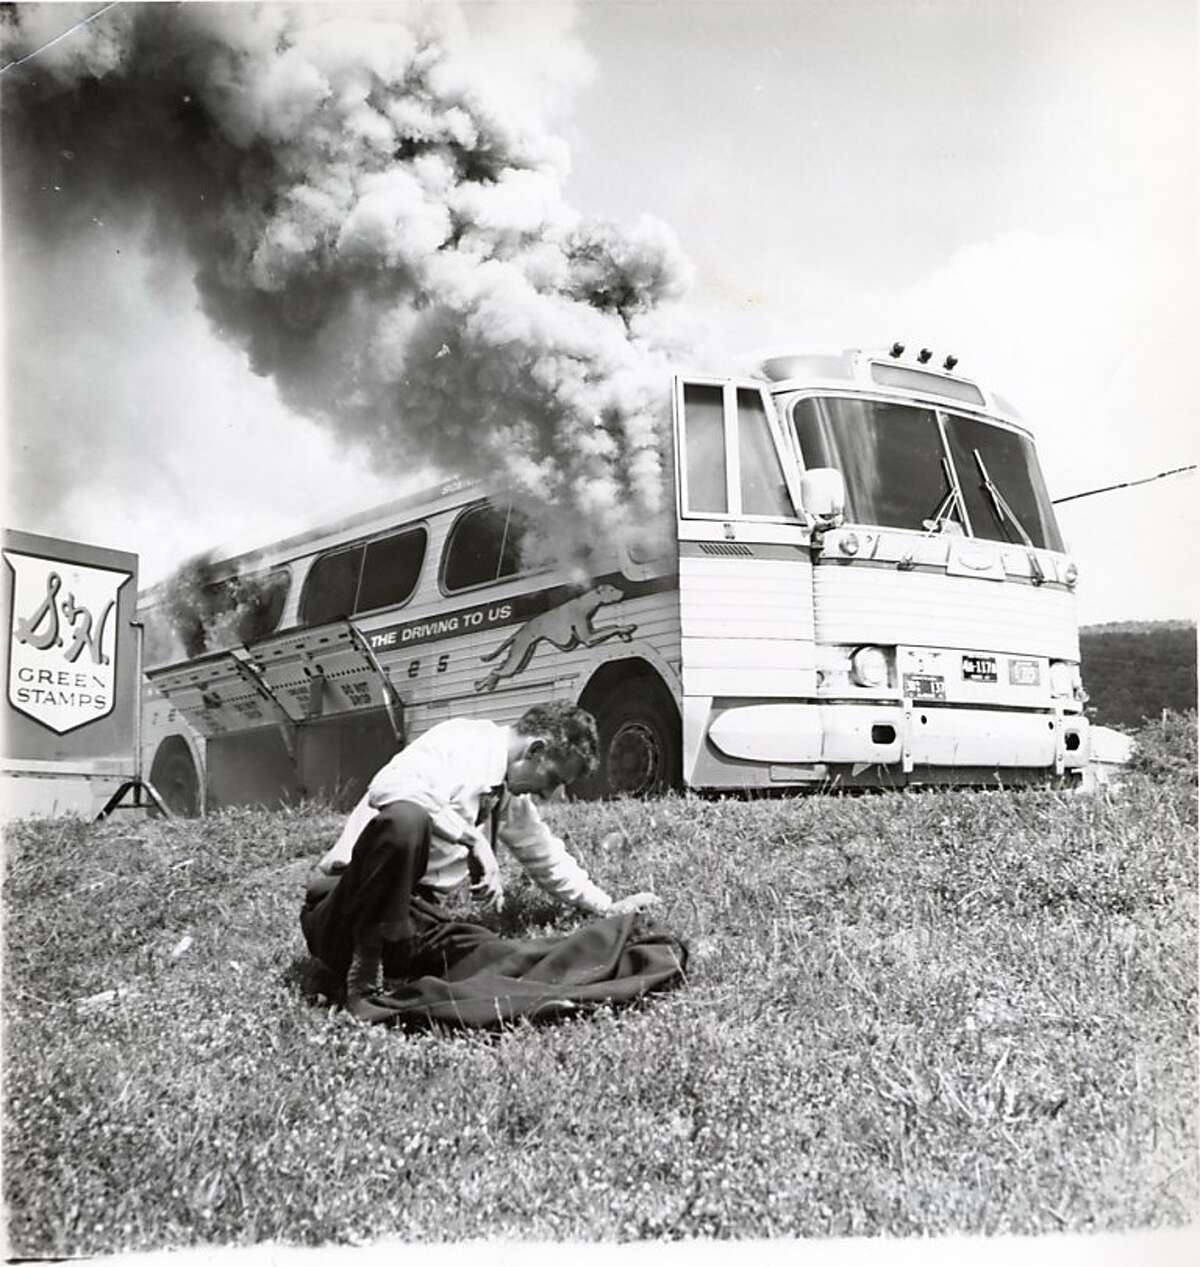 A Greyhound bus that had carried Freedom Riders, was set afire by Ku Klux Klan members outside Anniston, Ala., on May 14, 1961. Bleiberg story. Photograph by Joseph Postiglione Courtesy Birmingham Civil Rights Institute